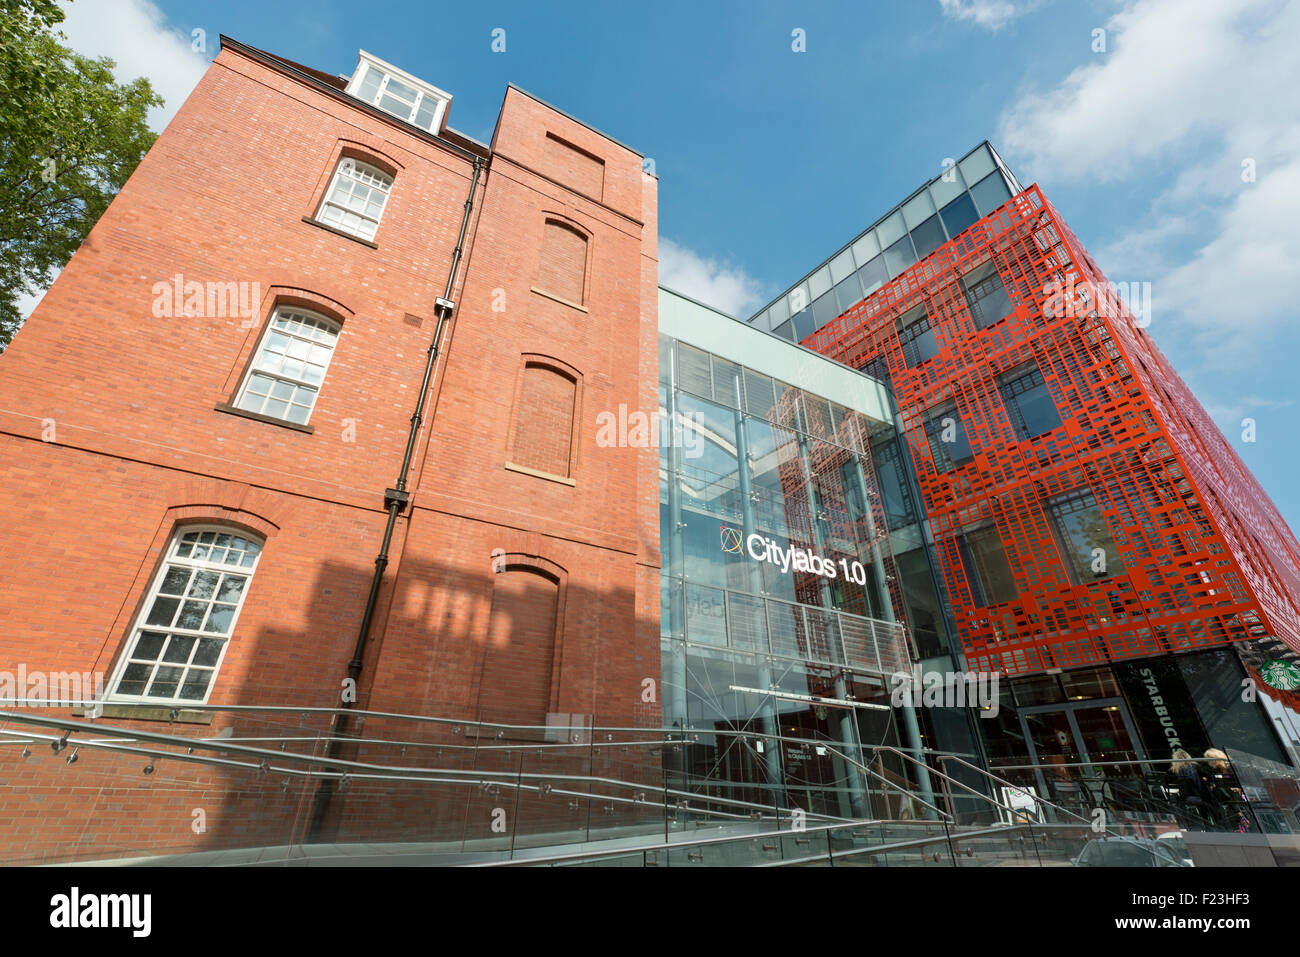 The Citylabs biomedical centre of excellence building located near to the NHS Manchester Royal Infirmary hospital - Stock Image